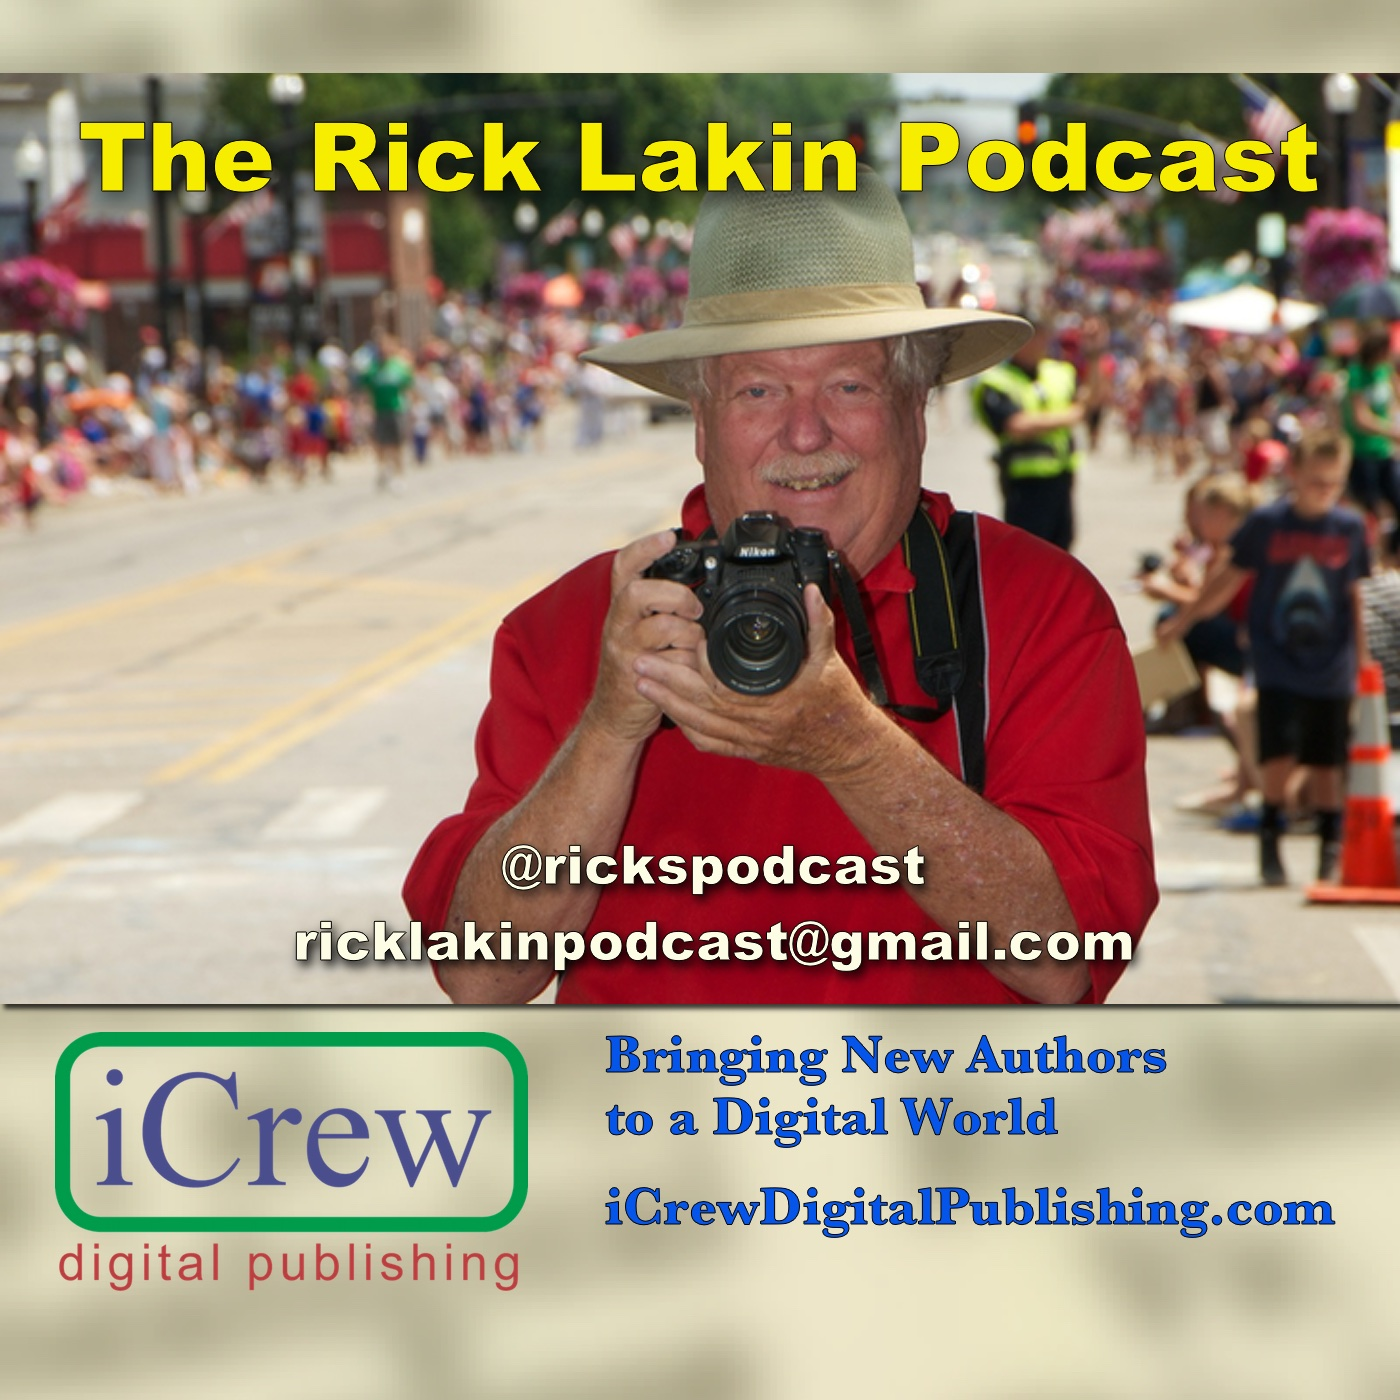 The Rick Lakin Podcast